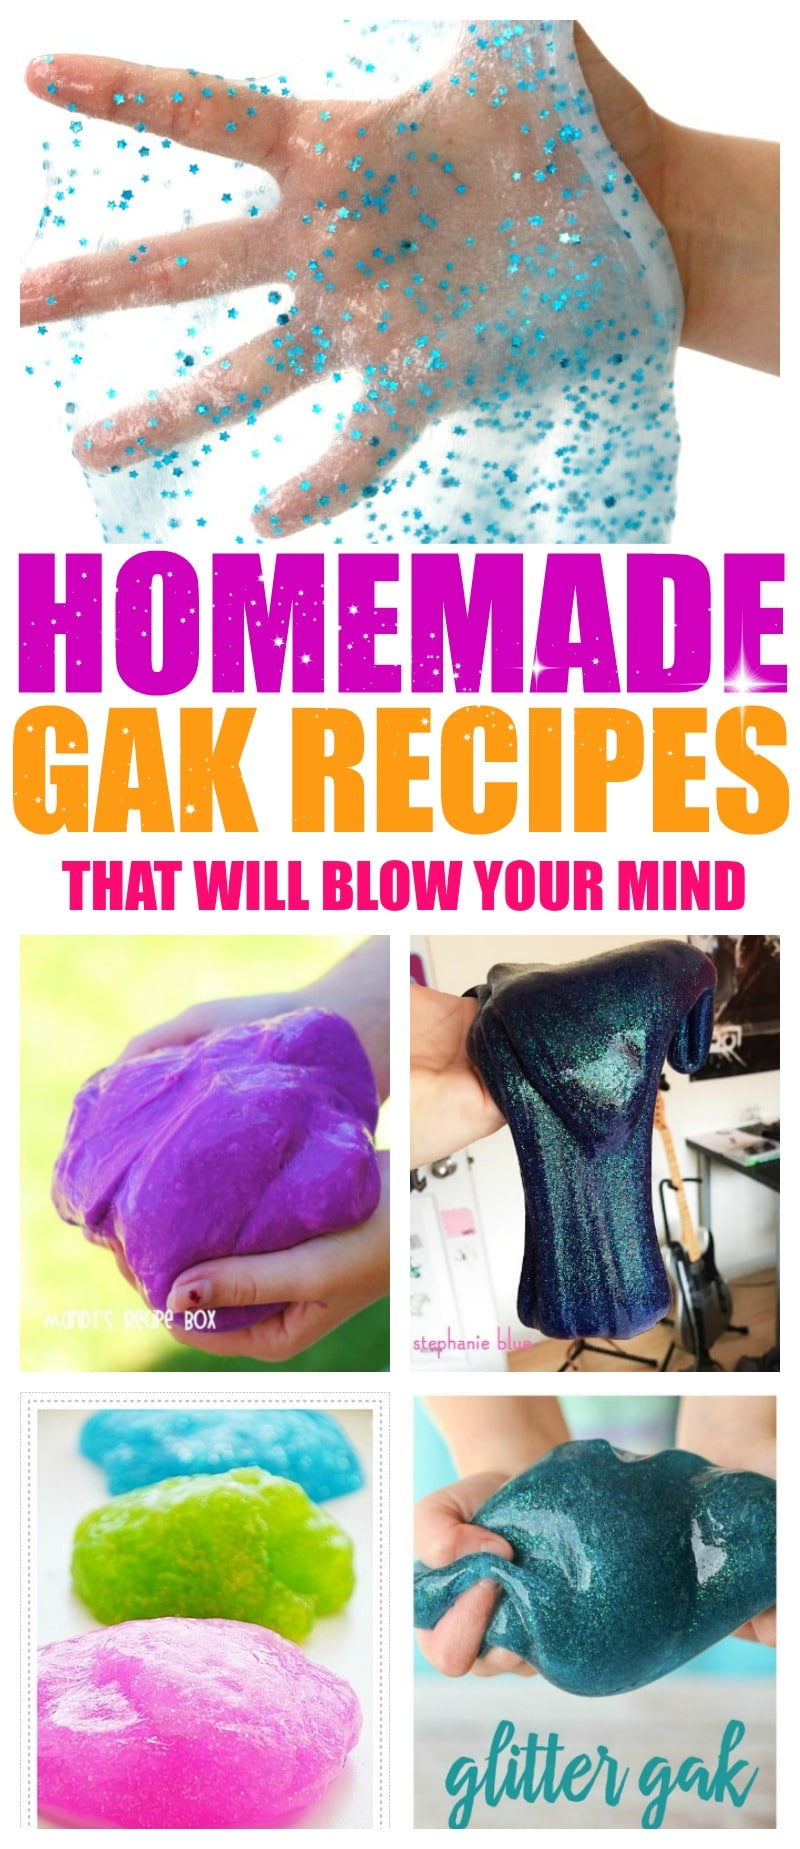 5 Homemade Gak Recipes that will Blow your Mind: Glitter Gak is SO much fun